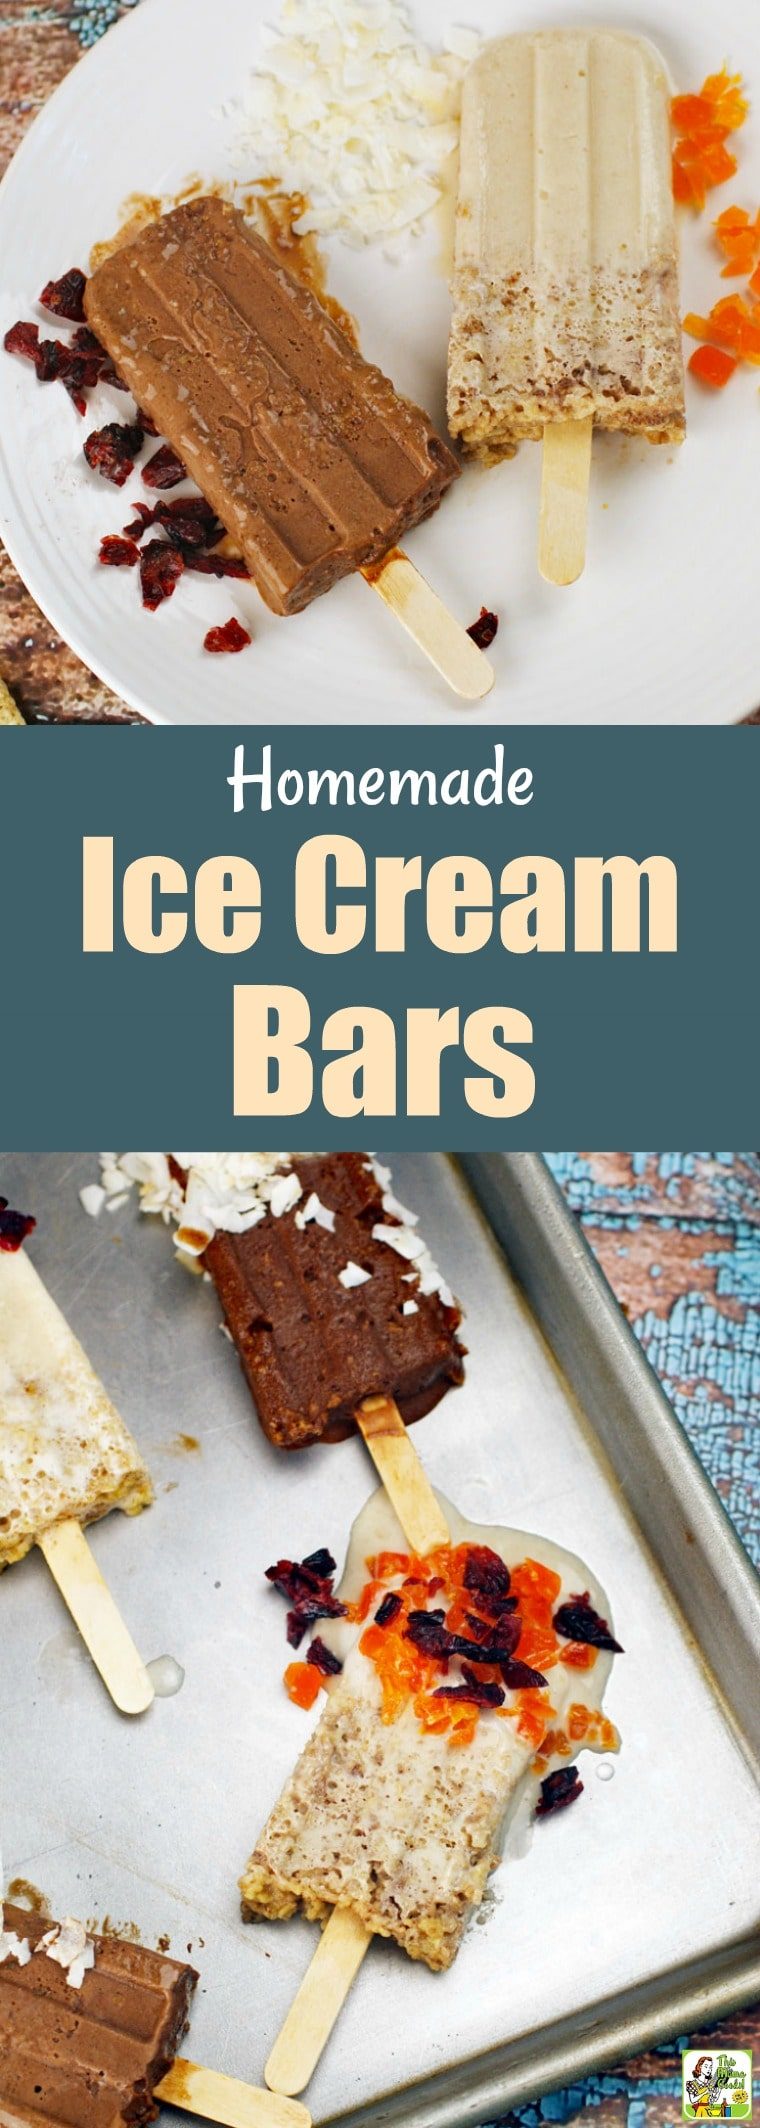 How about making some Homemade Ice Cream Bars for snack time? They're the perfect ice cream dessert recipe to make with the kids! Can be made gluten free, dairy free, vegan, and guilt free depending on what ice cream and ingredients you choose to use. Directions tell you how to use popsicle molds or mini-paper cups and craft sticks. #recipes #easy #recipeoftheday #glutenfree #easyrecipe #easyrecipes #glutenfreerecipes #snacks #desserts #dessertrecipes #dessertideas #veganfood #vegan #vegan...